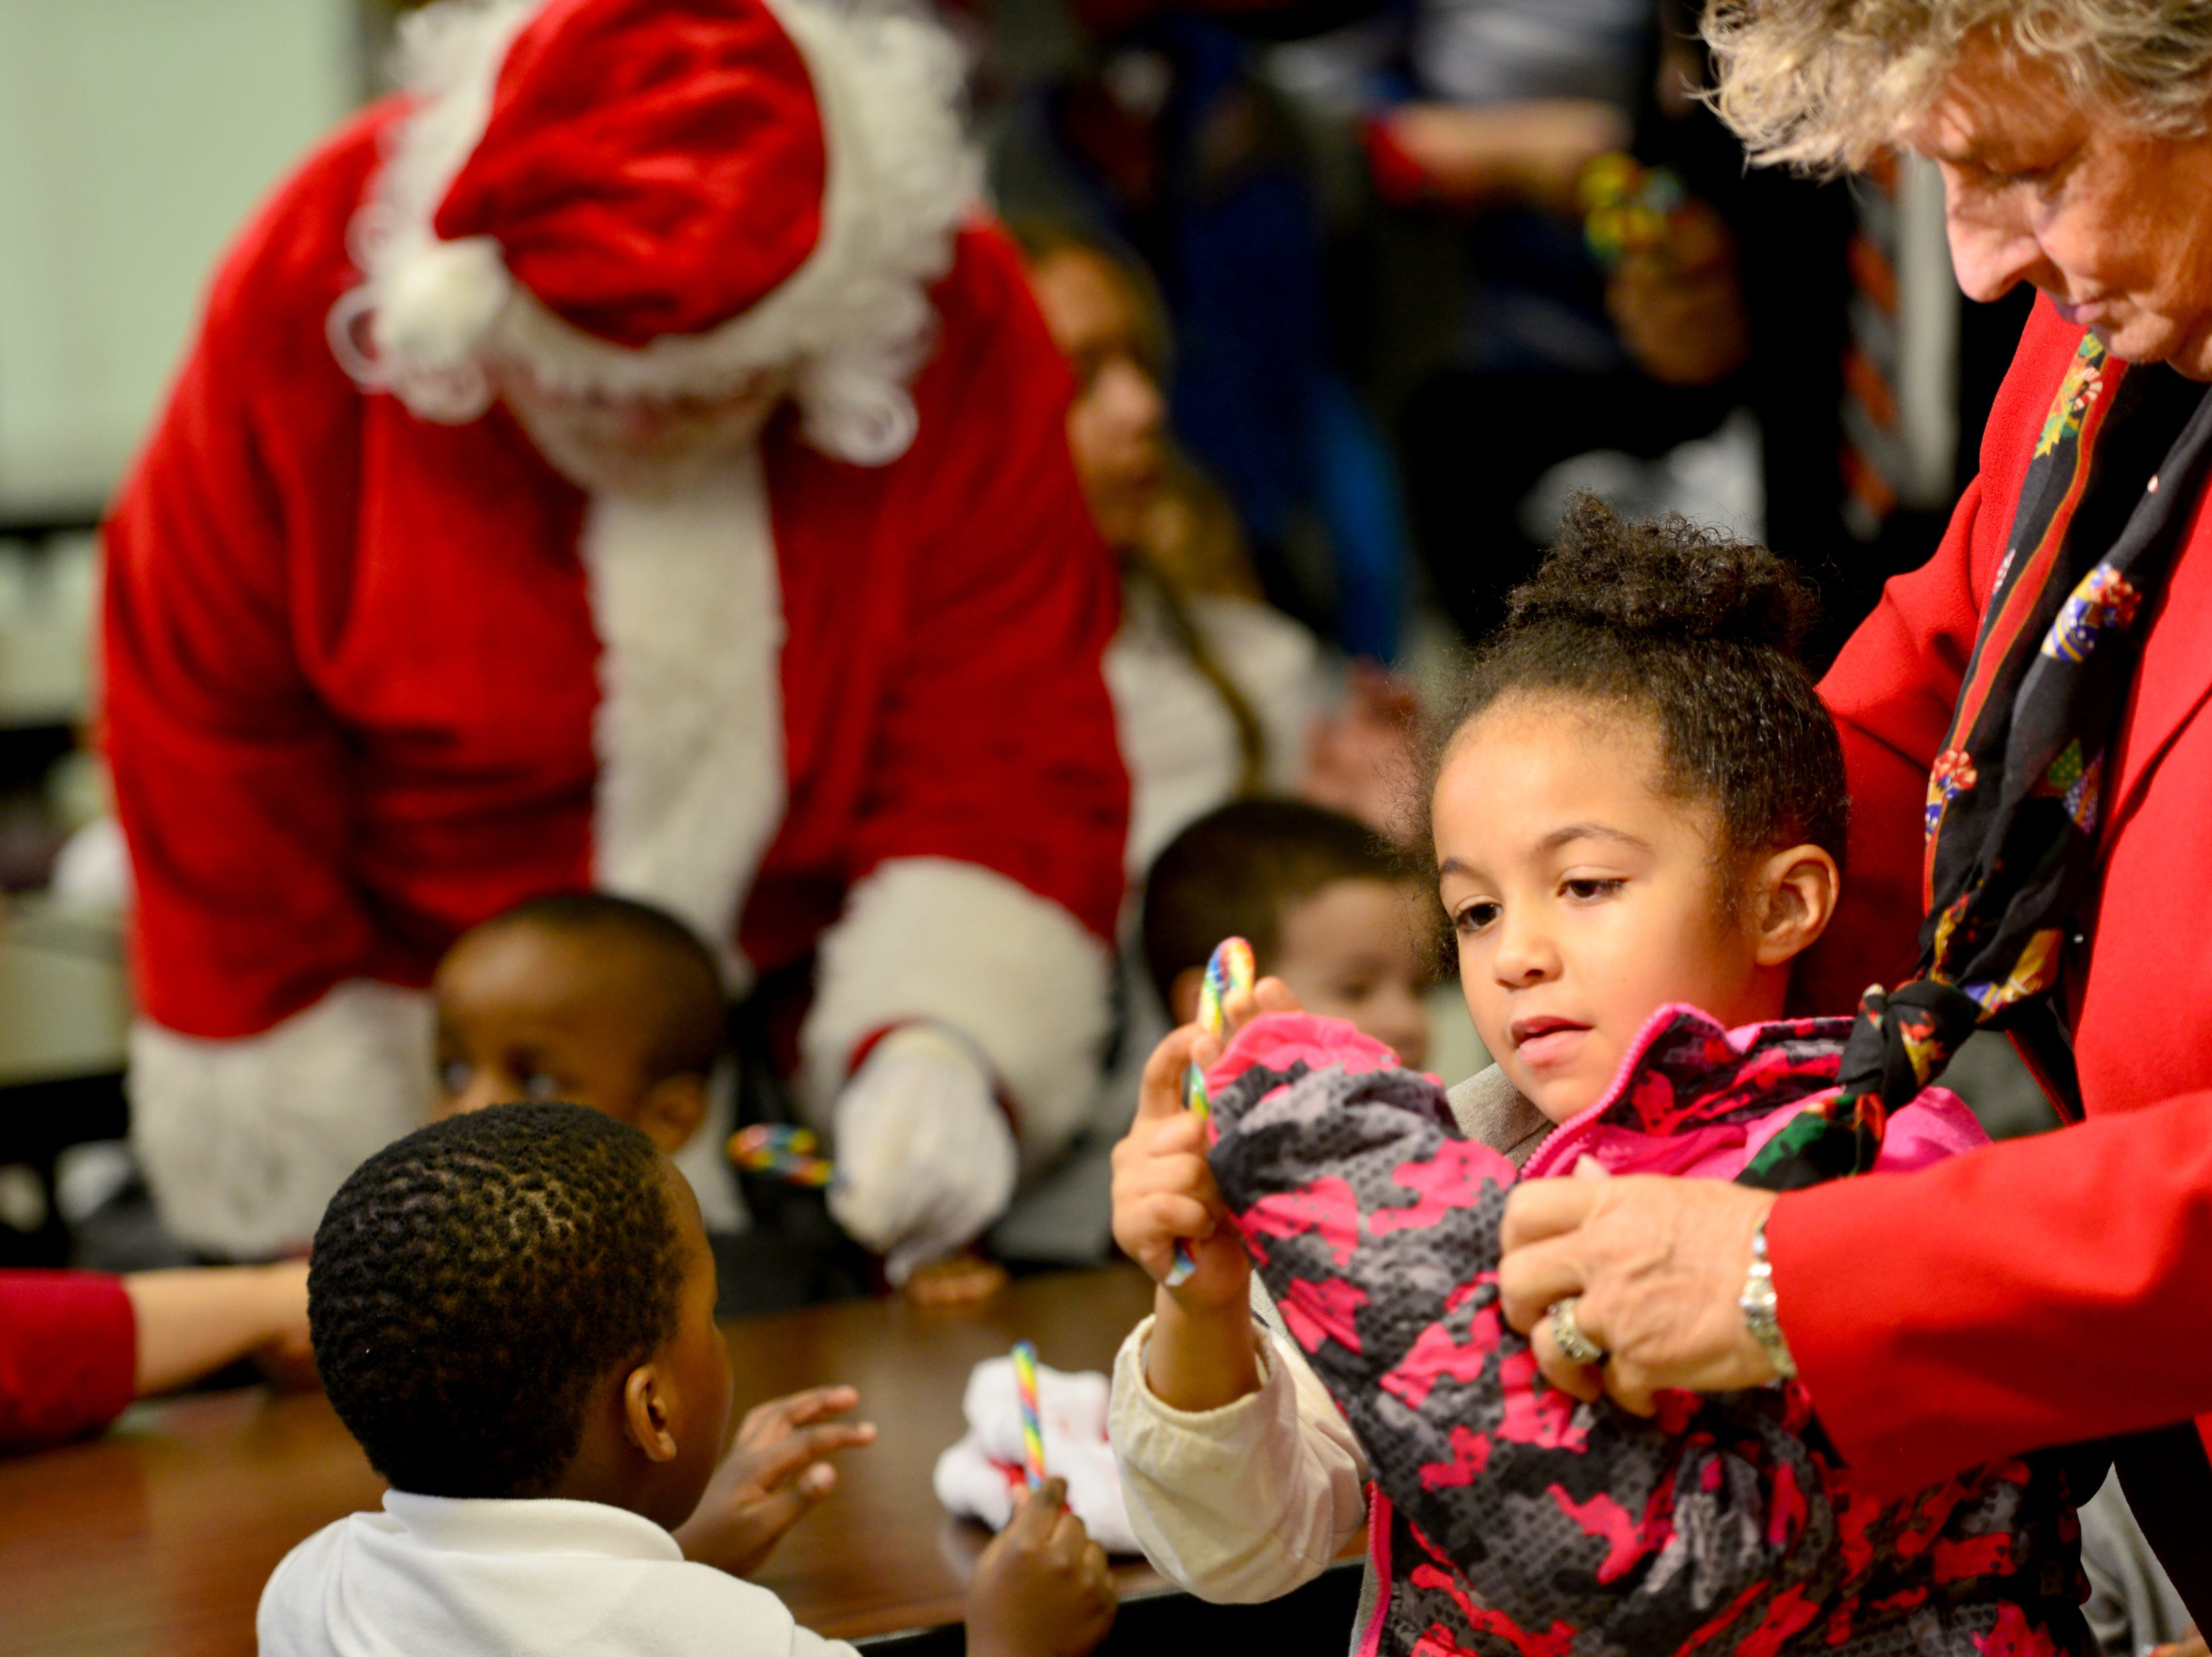 Paterson Schools Superintendent Eileen Shafer, helps Elliana Lusk, a PreK4 student put on her new coat. The Paterson Rotary held their eighth annual Christmas Coat Drive in Paterson, on Monday morning December 17, 2018. The club donated coats to all the students at Edward W. Kilpatrick Elementary School. The Rotary Club raised funds from its members and the community to buy 380 coats for the students.